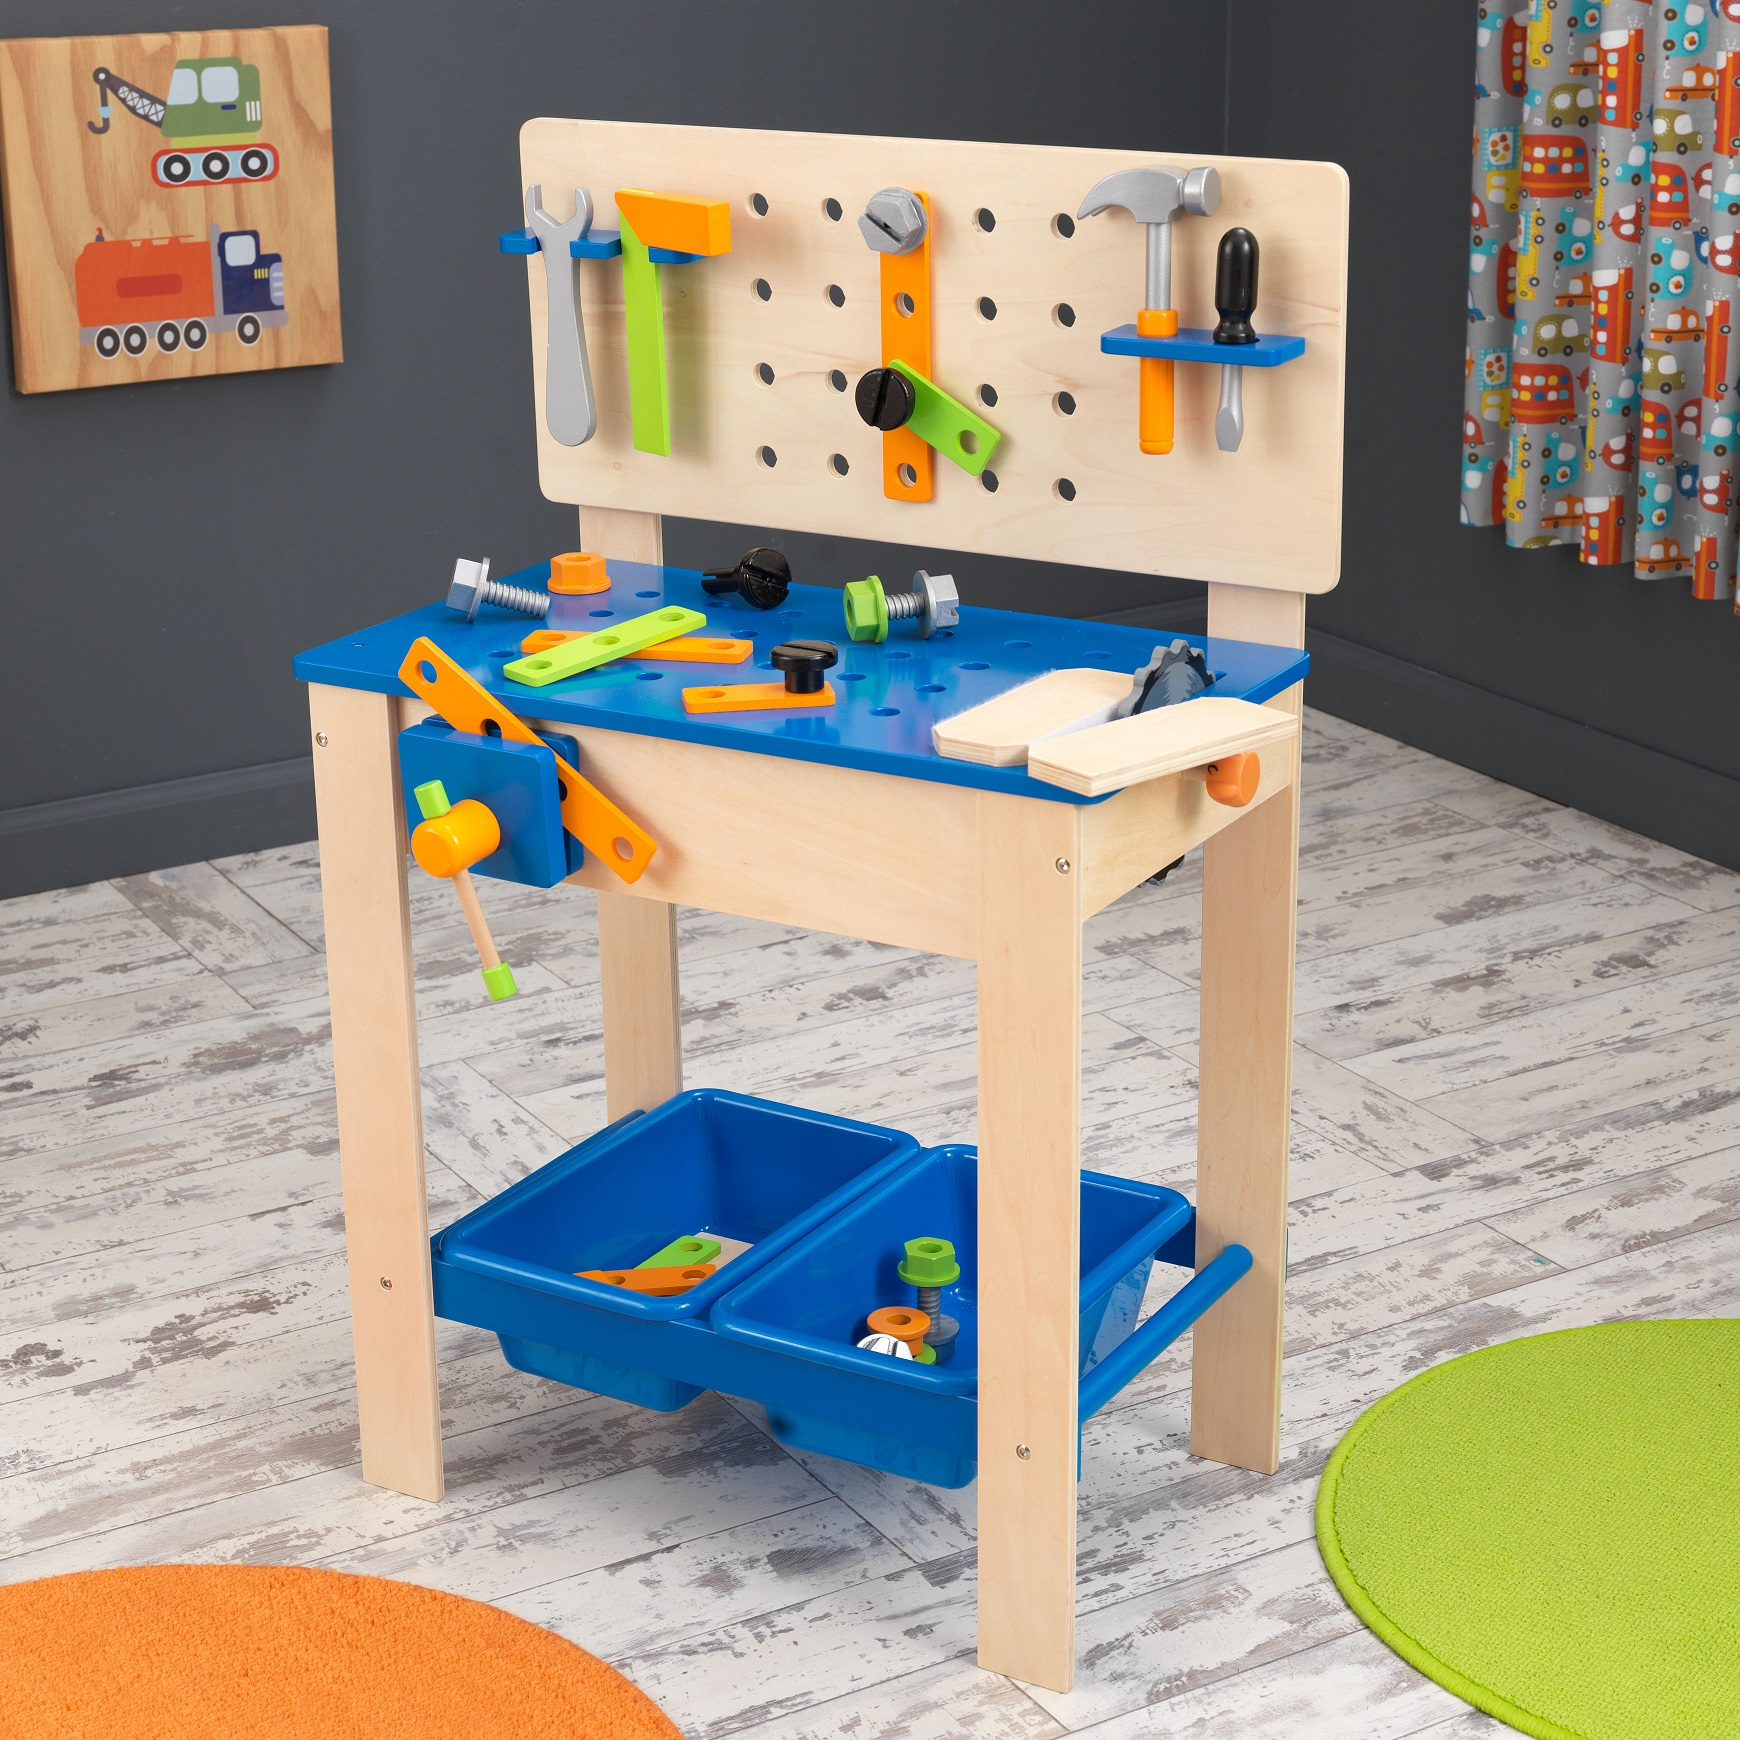 Deluxe Workbench with Tools